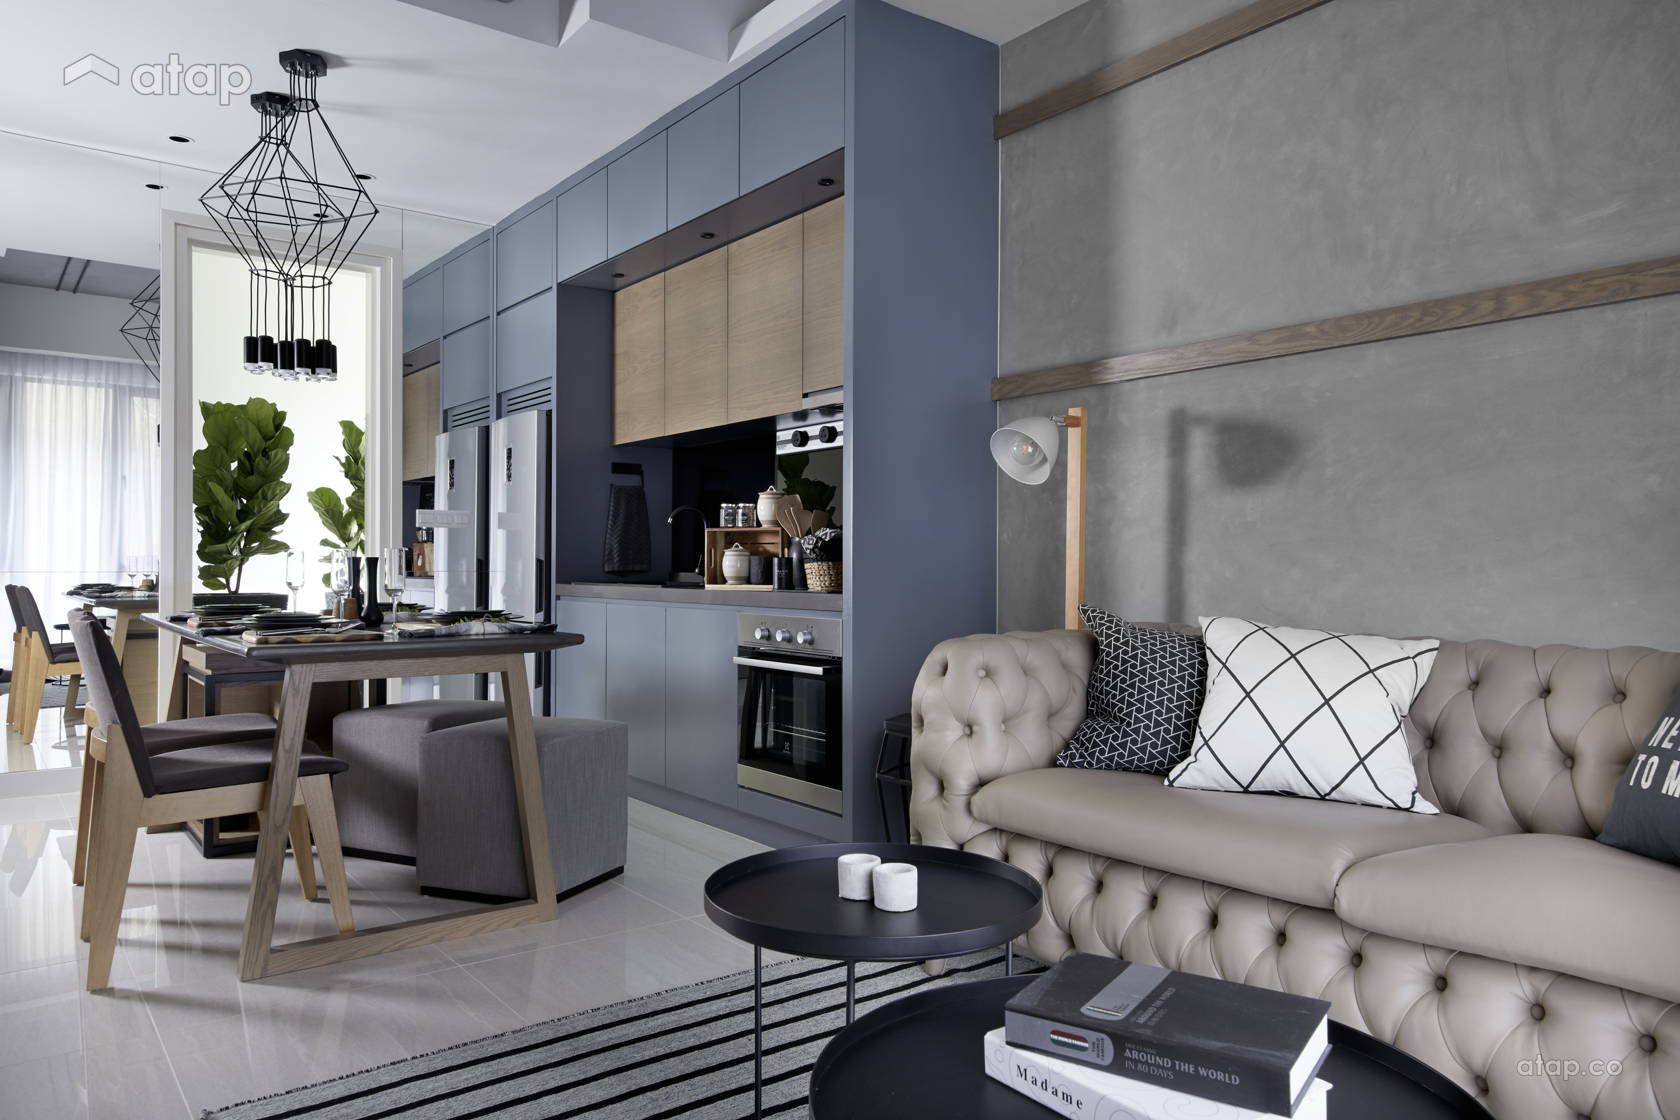 apartment-with-blue-kitchen-wall-and-dining-table